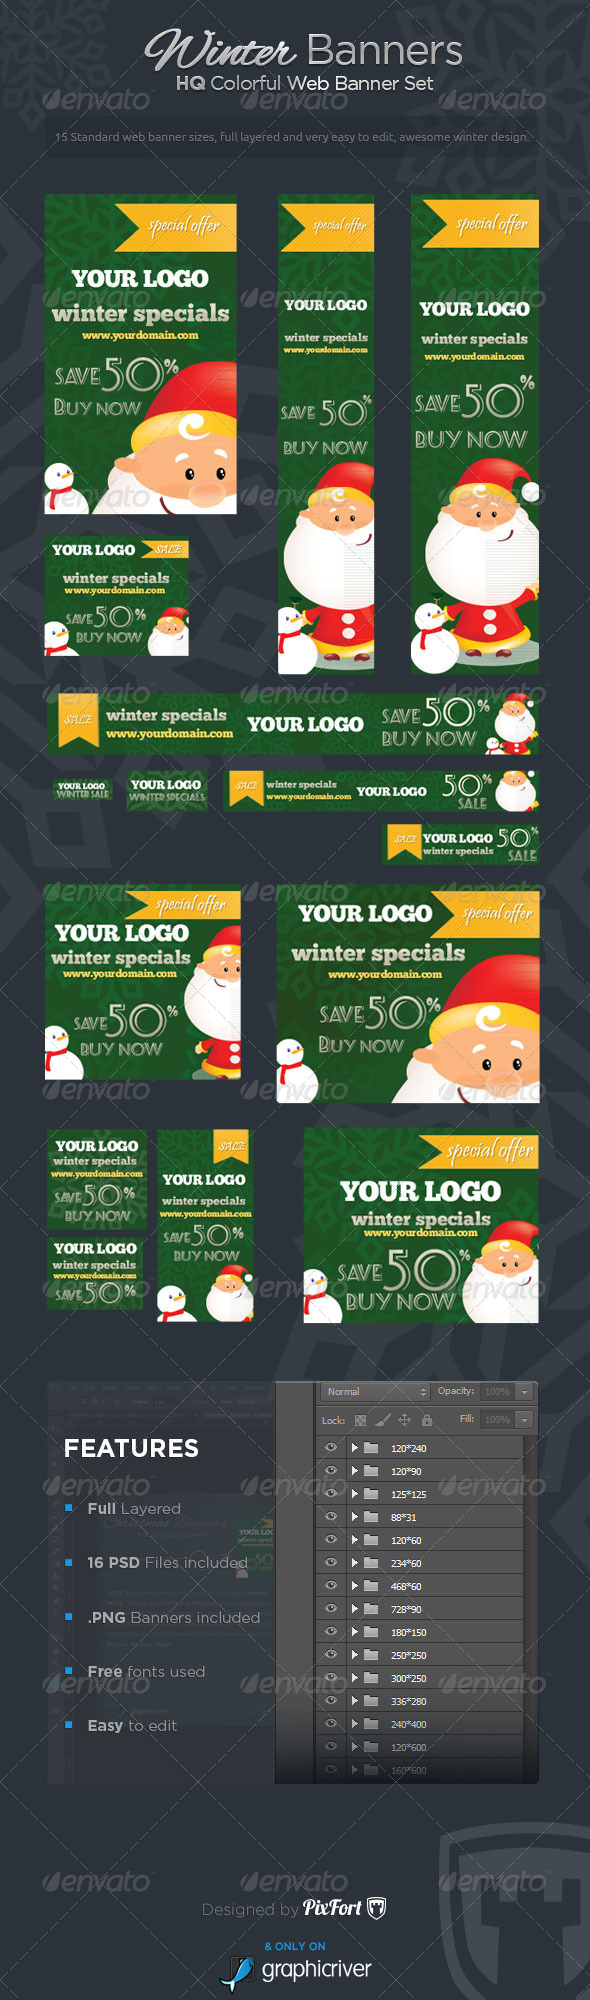 GraphicRiver Winter Banners Winter Specials Banner Set 6430877